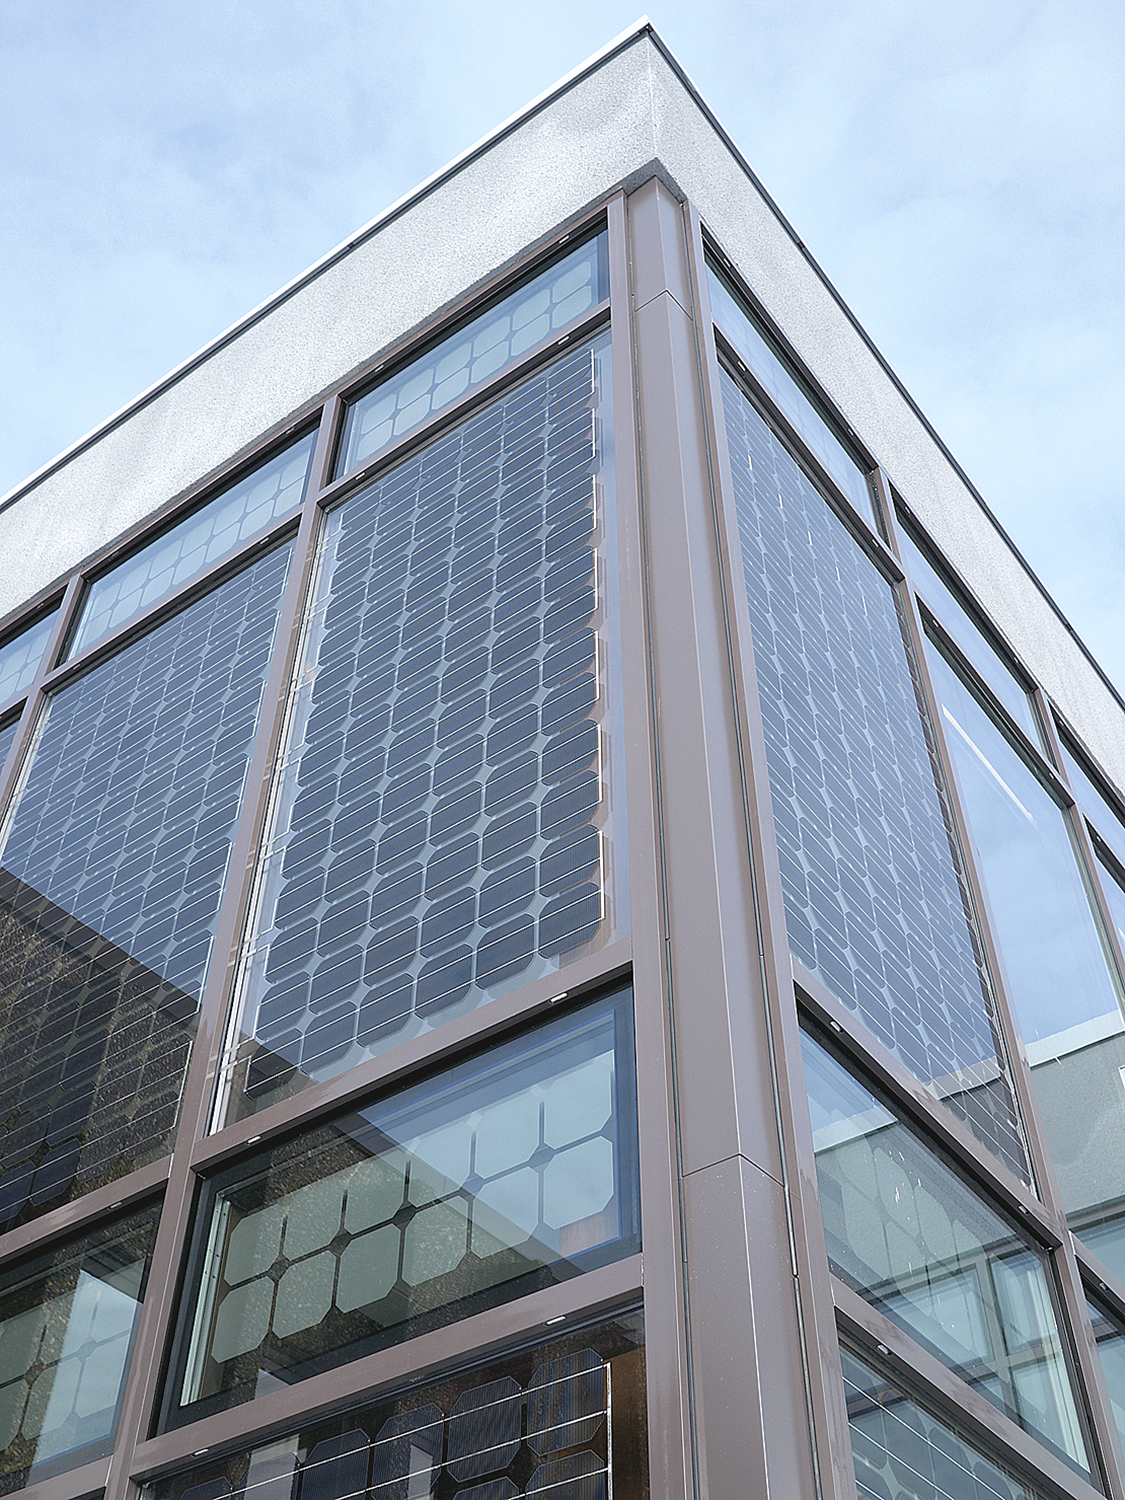 Building Systems For Solar Glazing